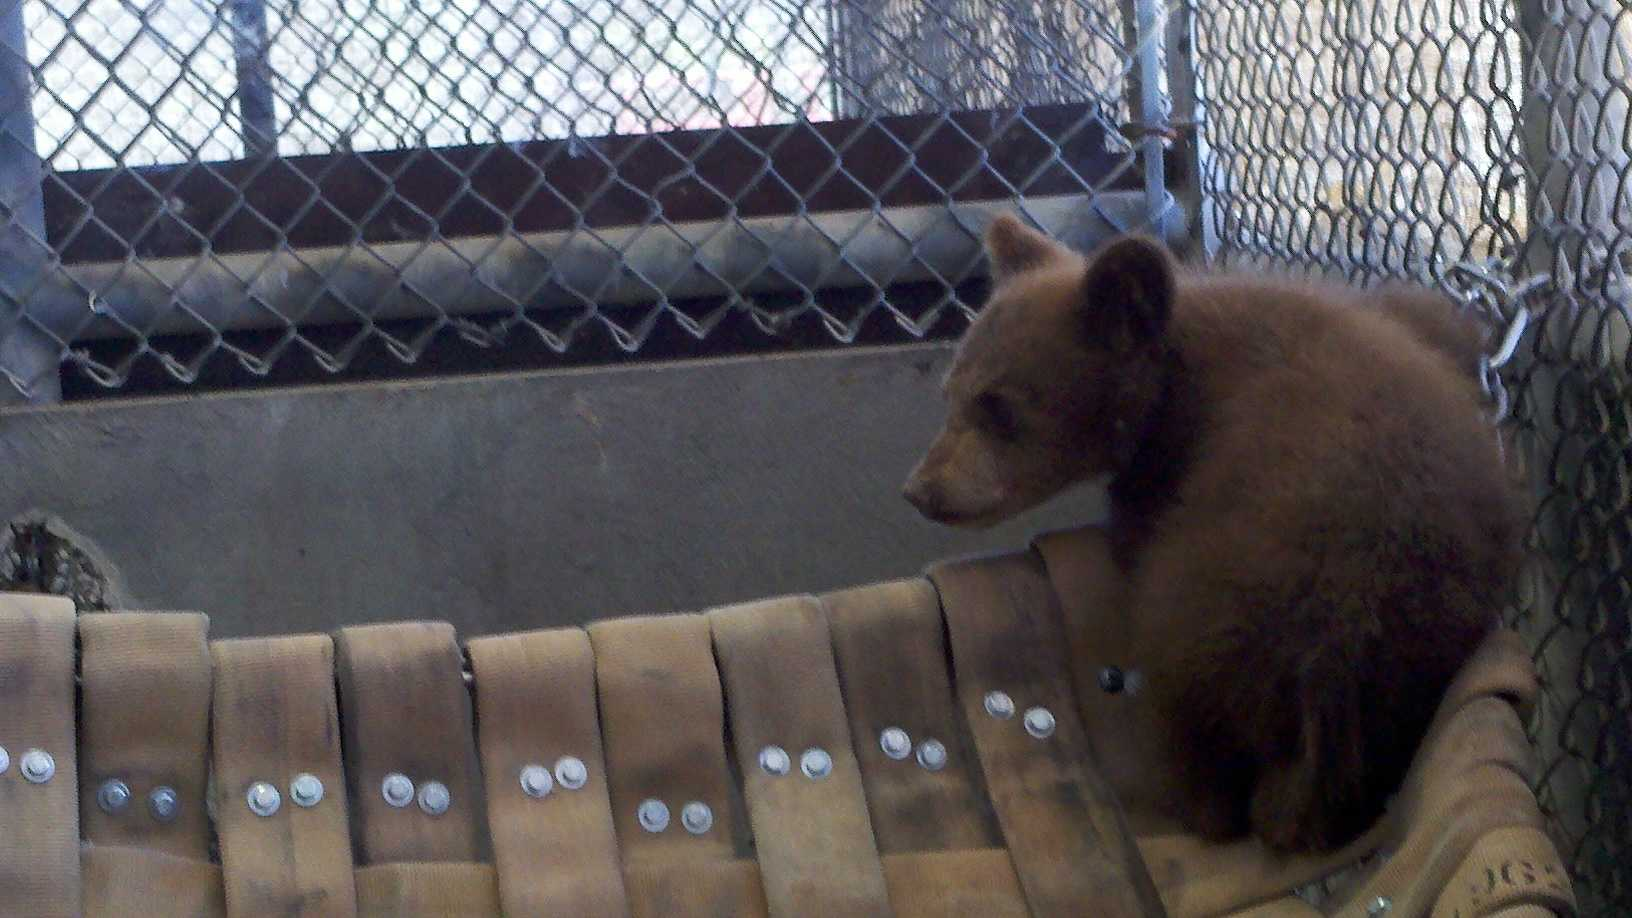 Here's one of the cubs playing inside a pen in RanchoCordova.